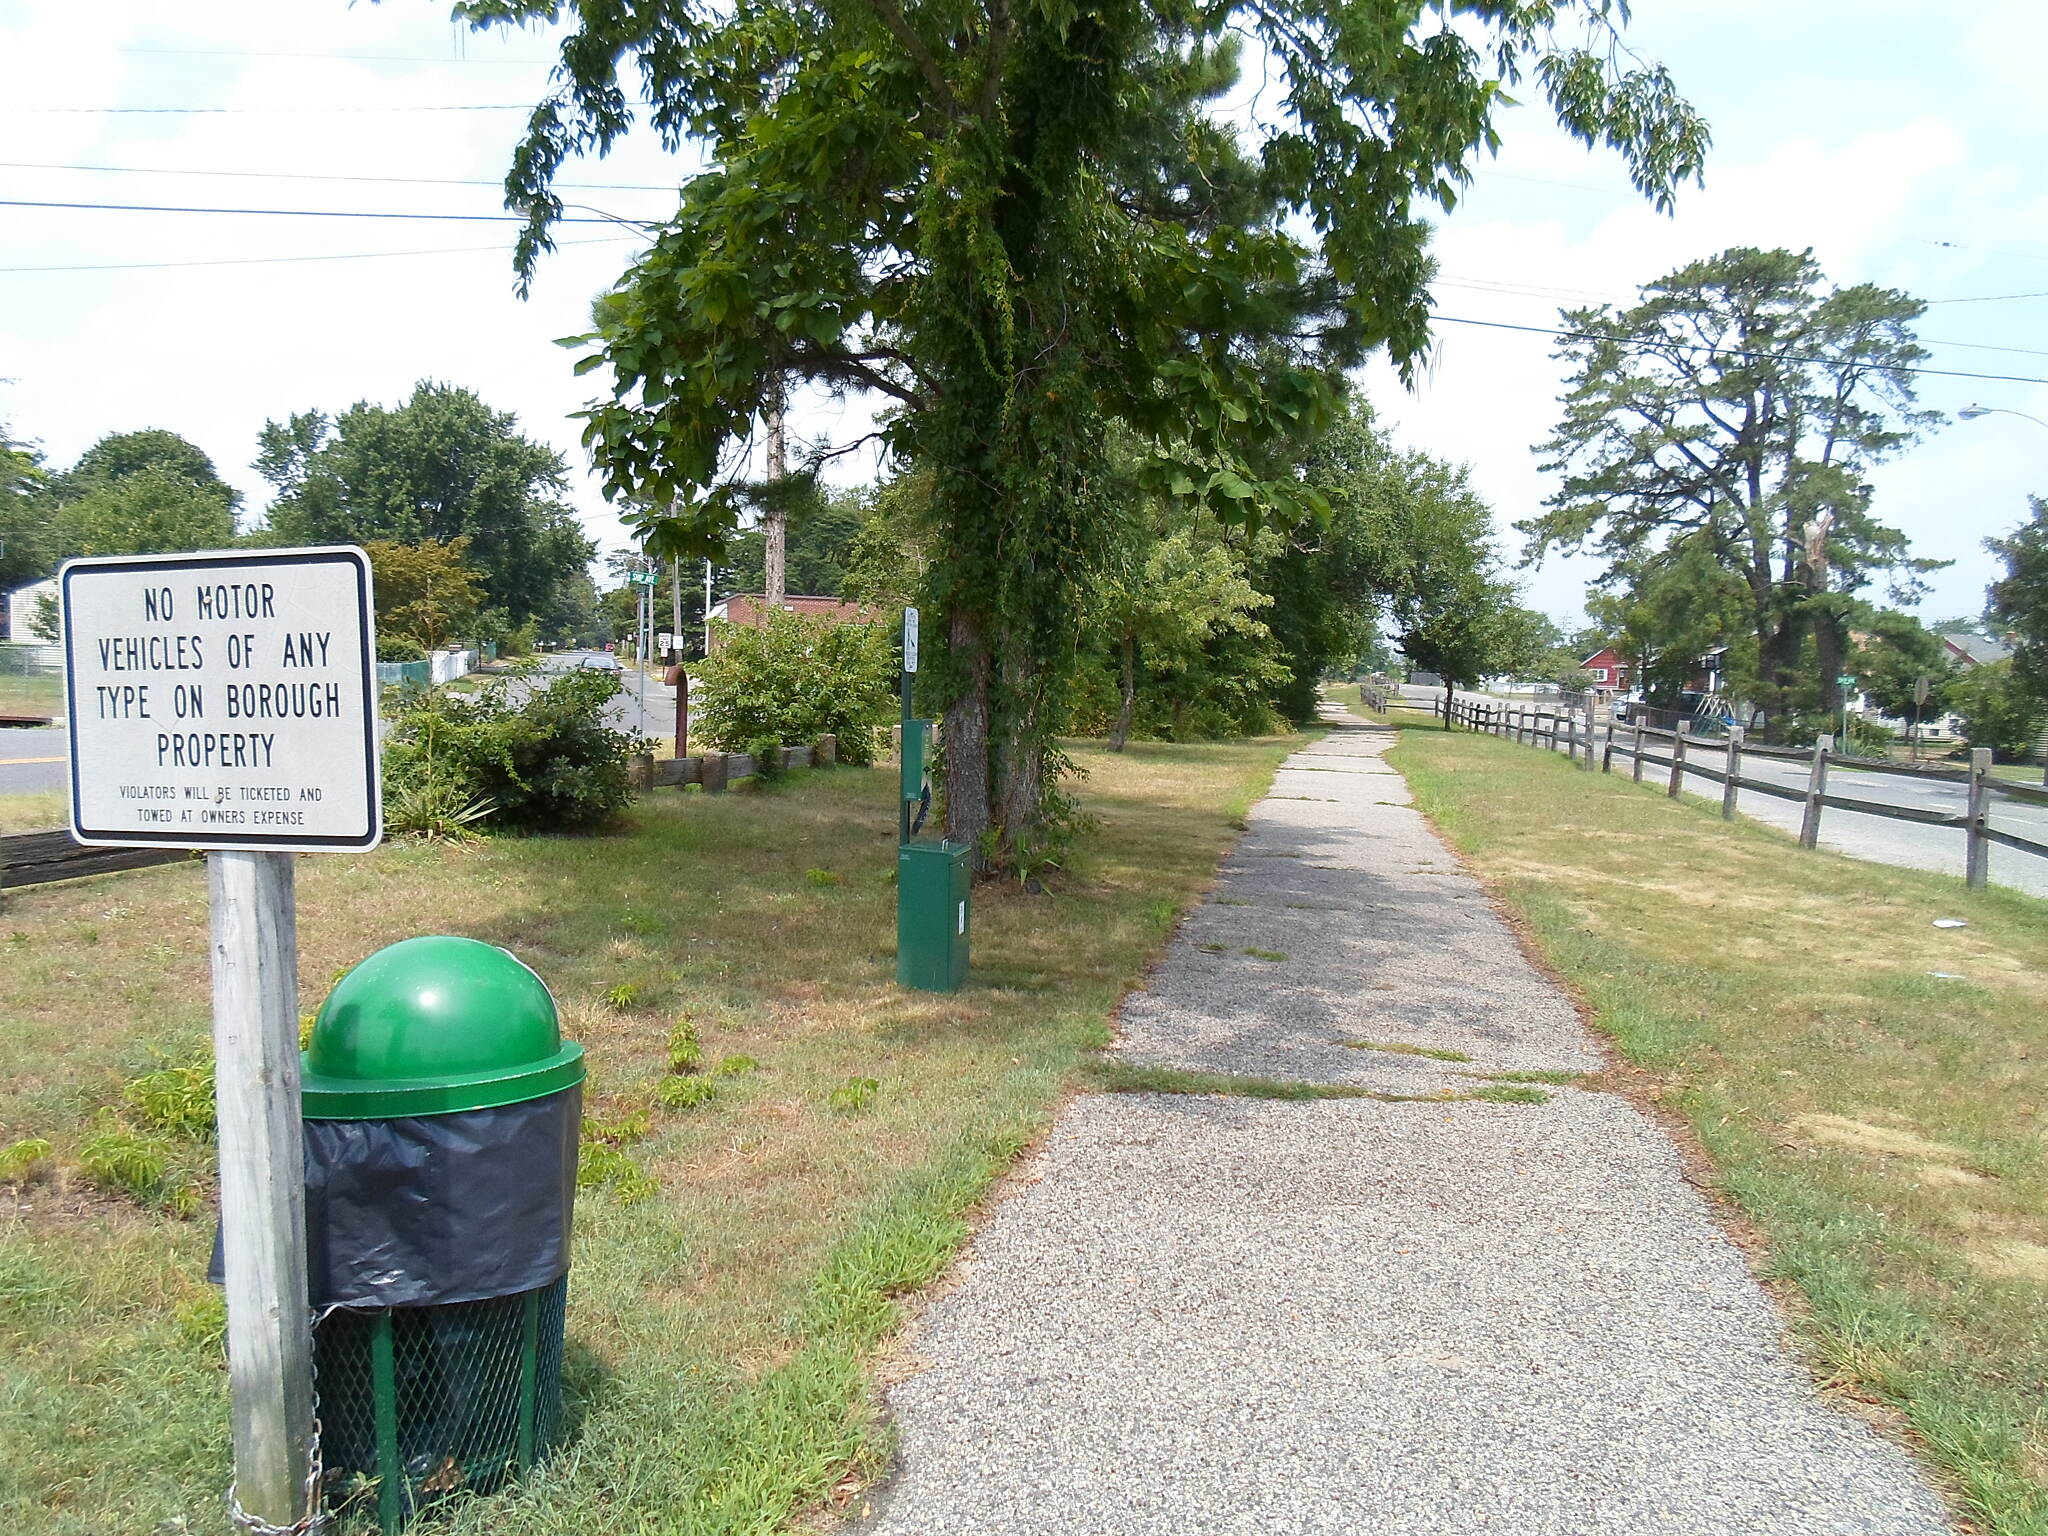 Barnegat Branch Trail Beachwood Borough Trail Looking north from Route 9. You can see how this section of the trail needs some maintenance. Cyclists should use caution.